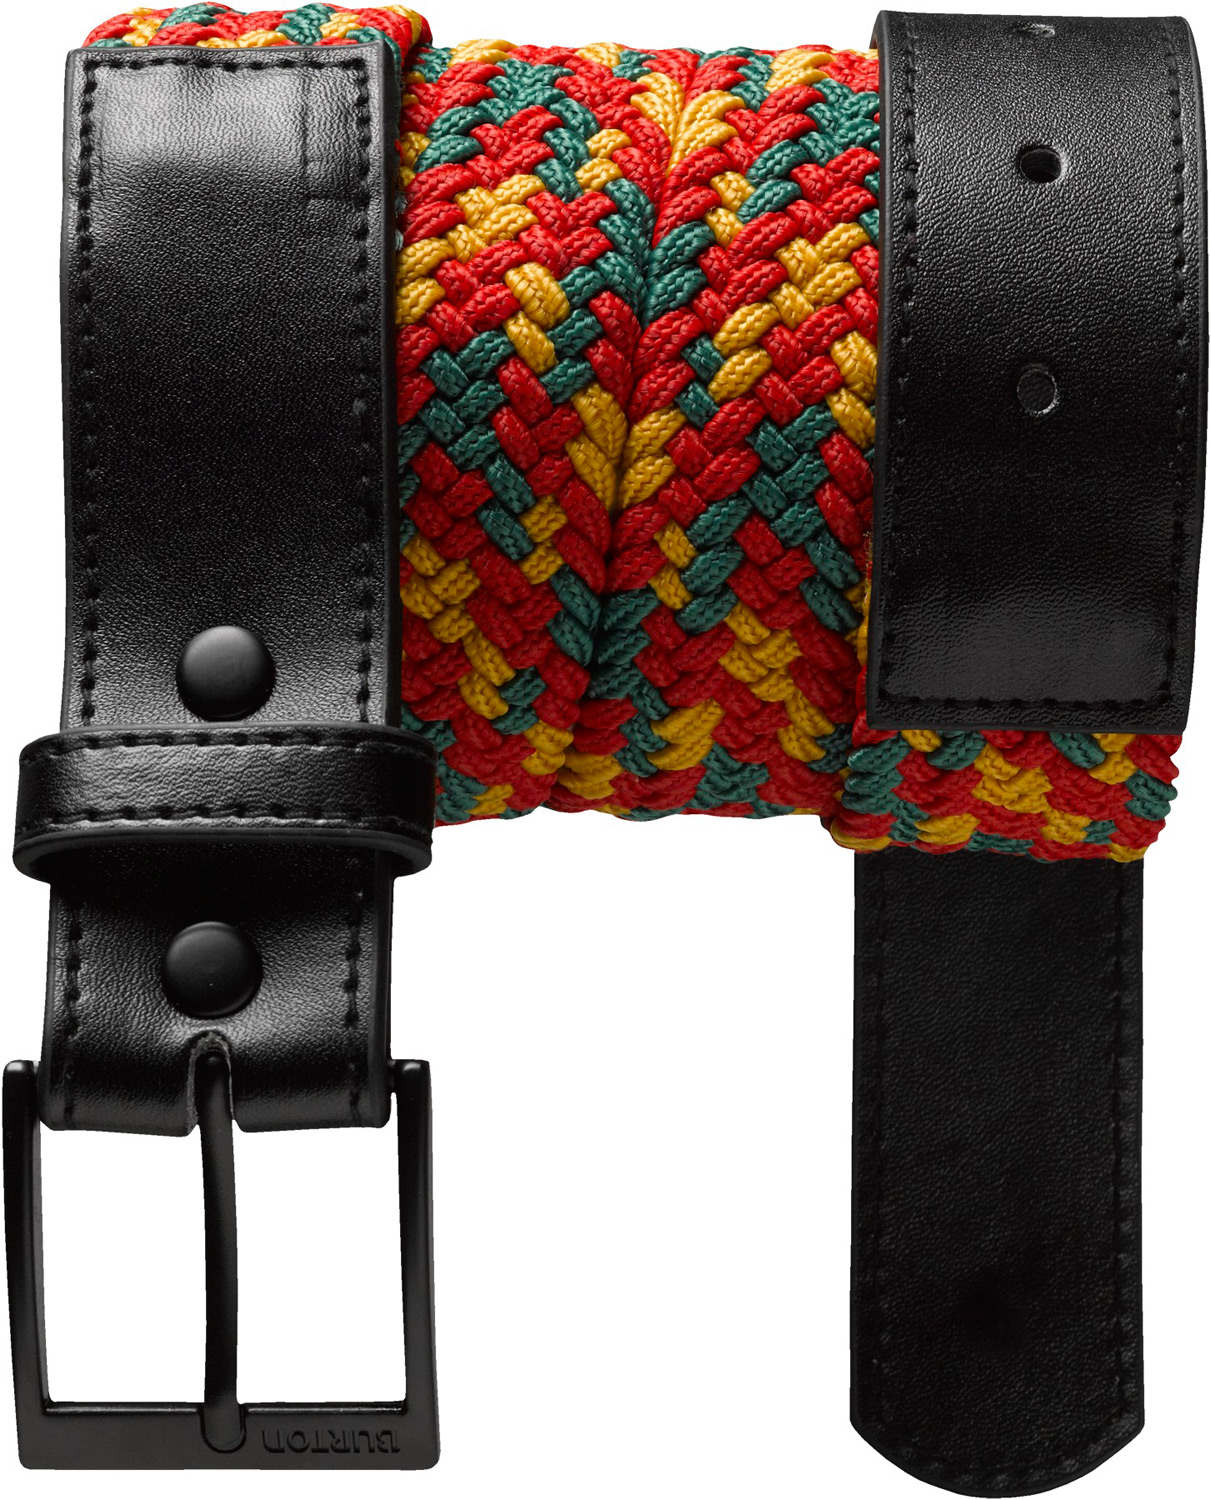 Snowboard Key Features of the Burton Holifax Woven Belt:  Multicolor Woven Belt  Debossed and Ink Filled Logo on Belt  Zinc Alloy Buckle with Embossed Word Mark Logo - $26.95